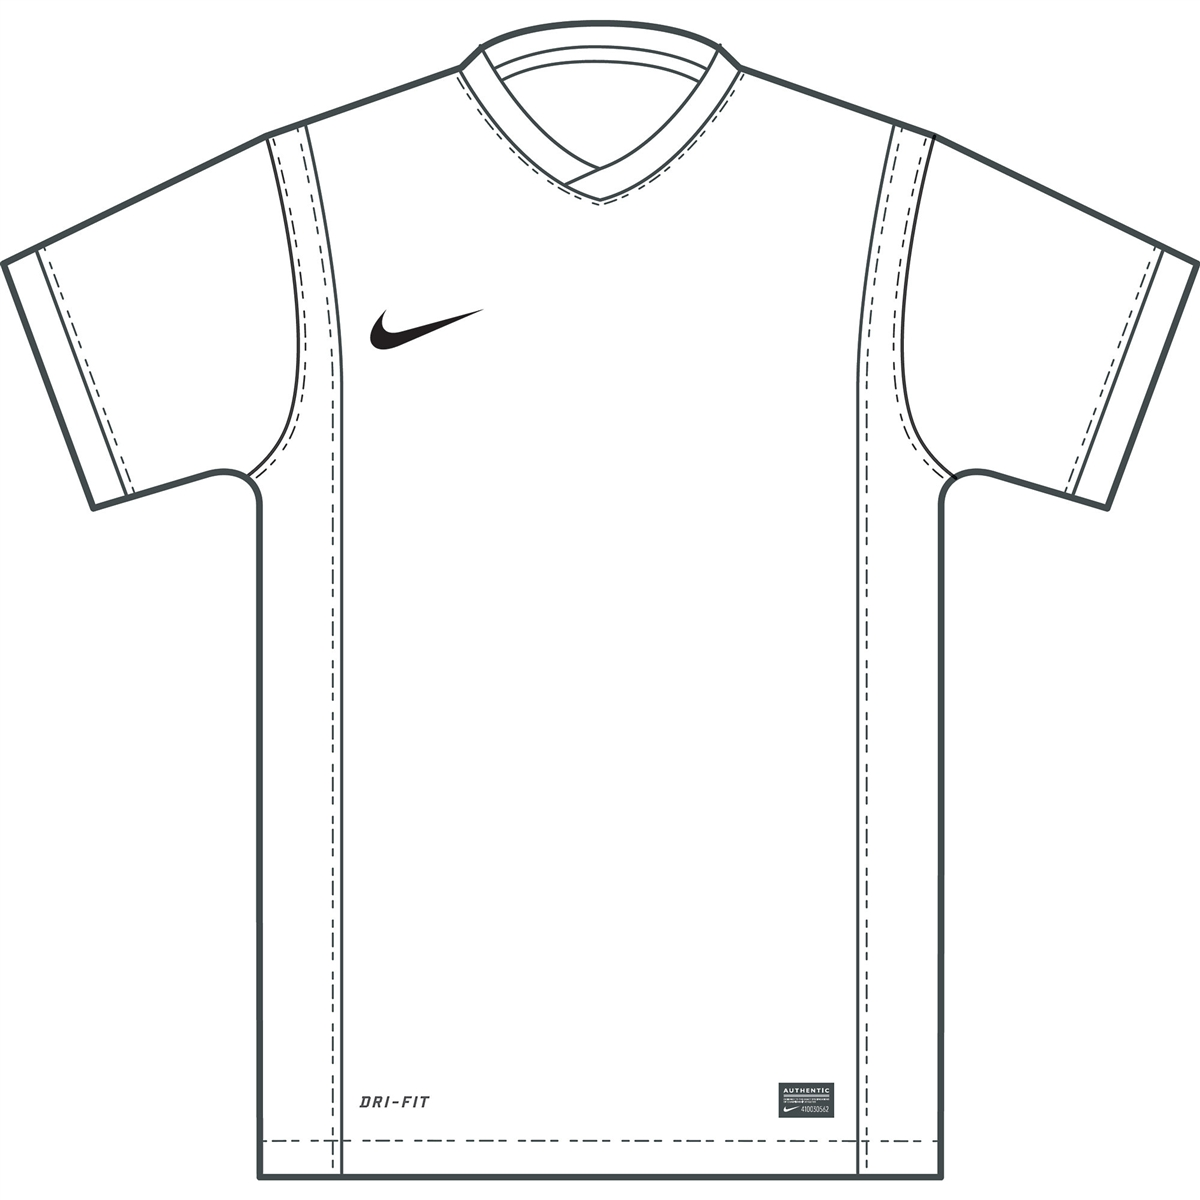 Design Template further Plain Hoodies Vector also Sport Baseball further Nike 14 15 Teamwear Kits Nike 2014 2015 in addition 29 Images Of Photoshop Magazine Layout Blank Template Download 20. on blank baseball templates